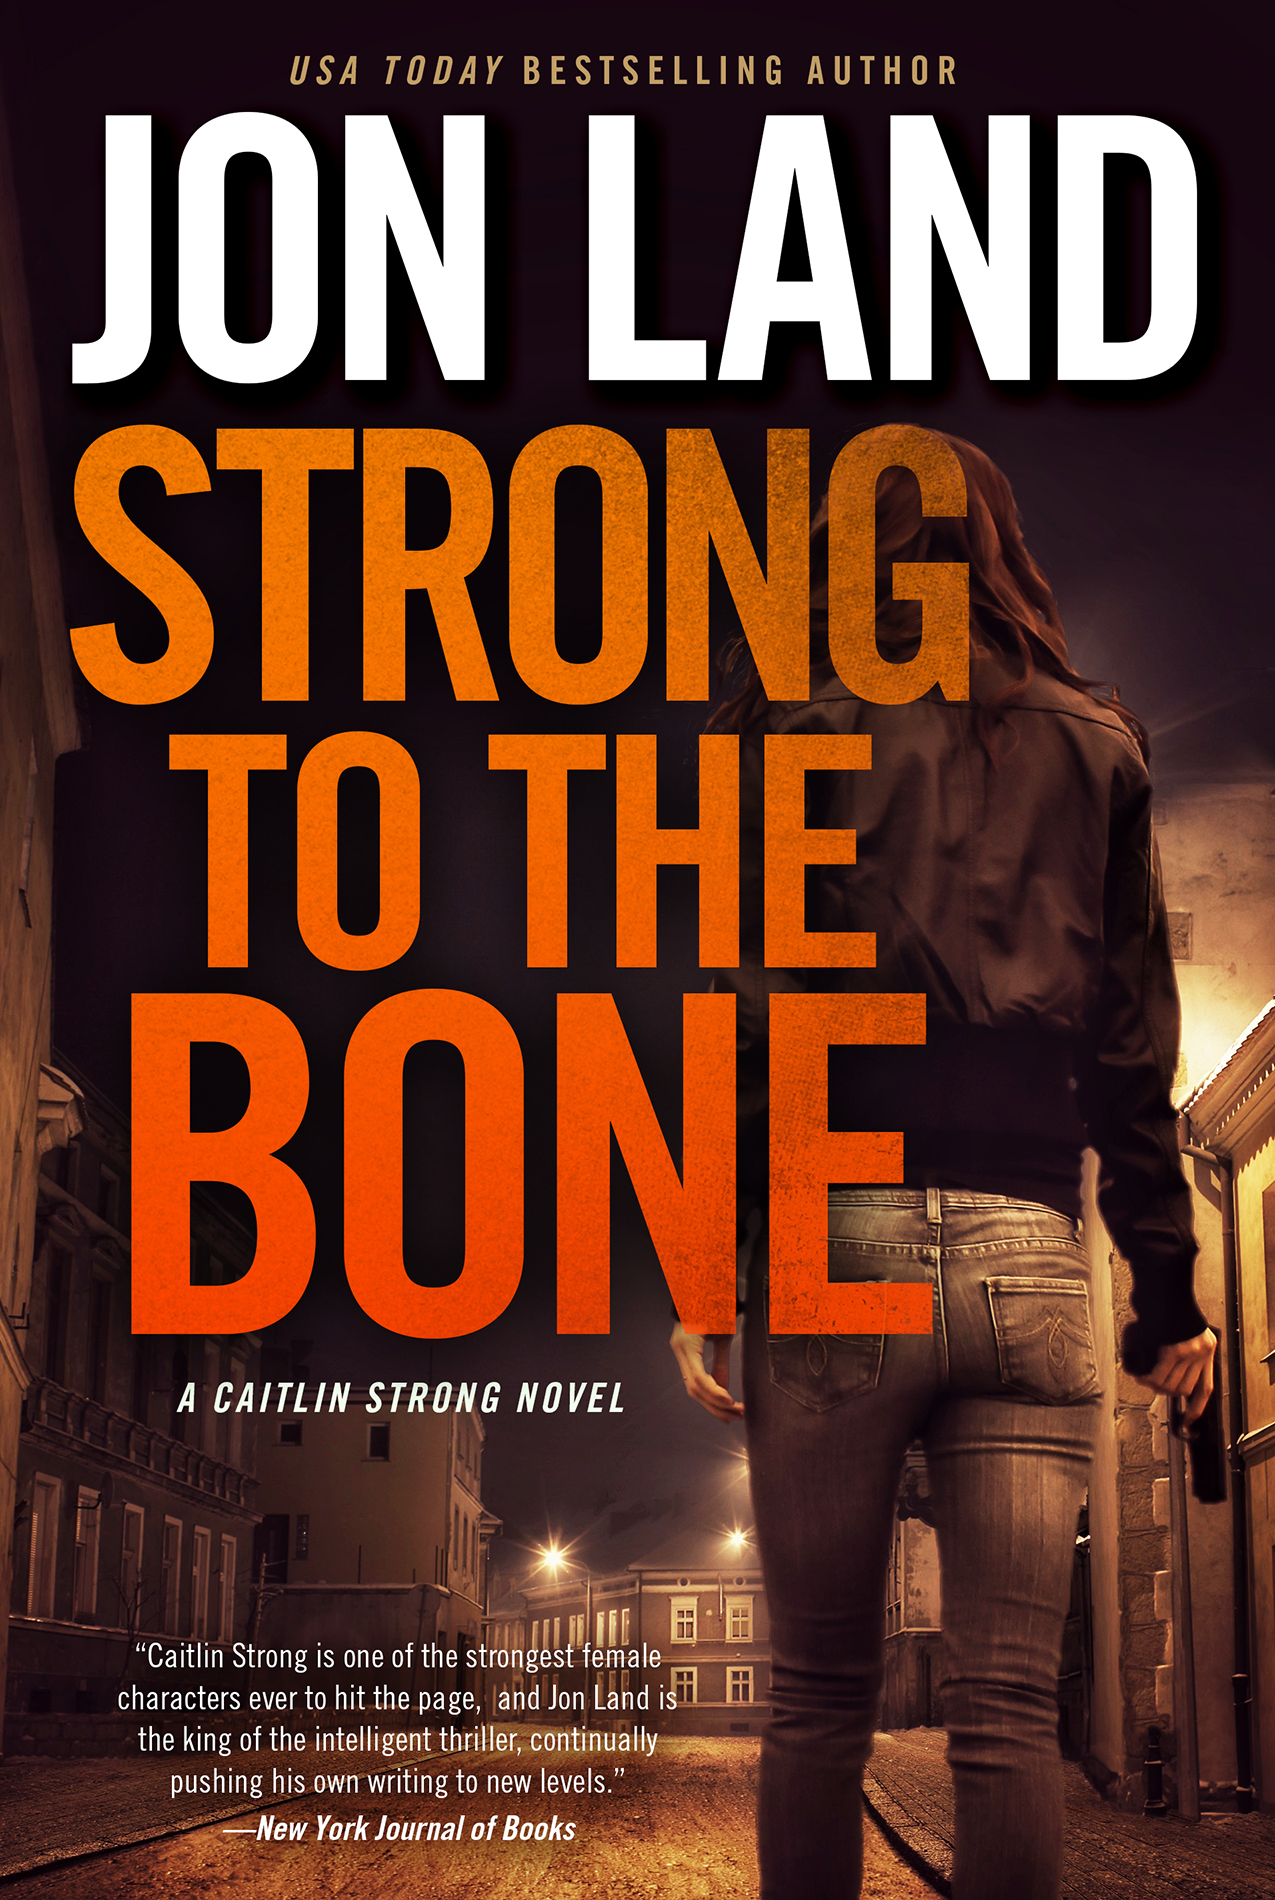 STRONG TO THE BONE by Jon Land